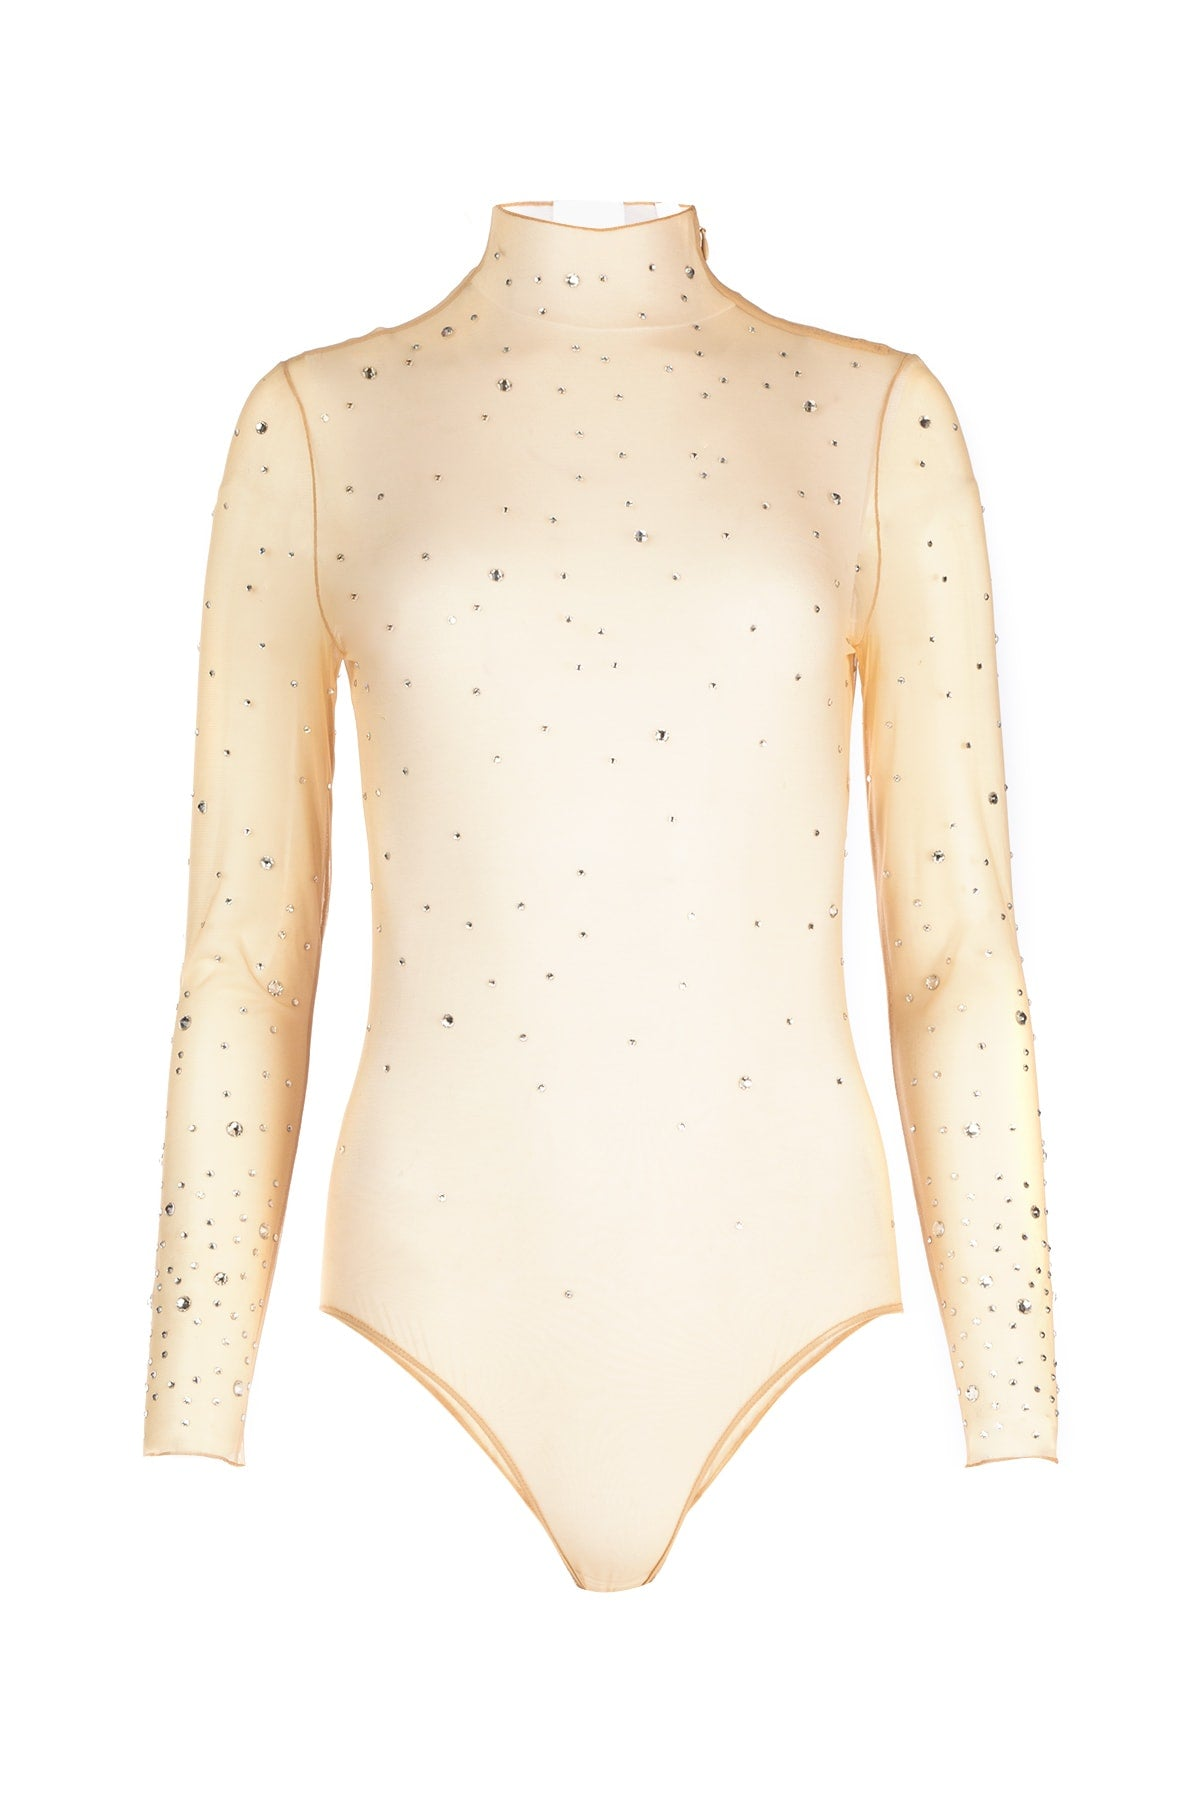 Burberry Suits BURBERRY SHEER CRYSTAL EMBELLISHED BODYSUIT